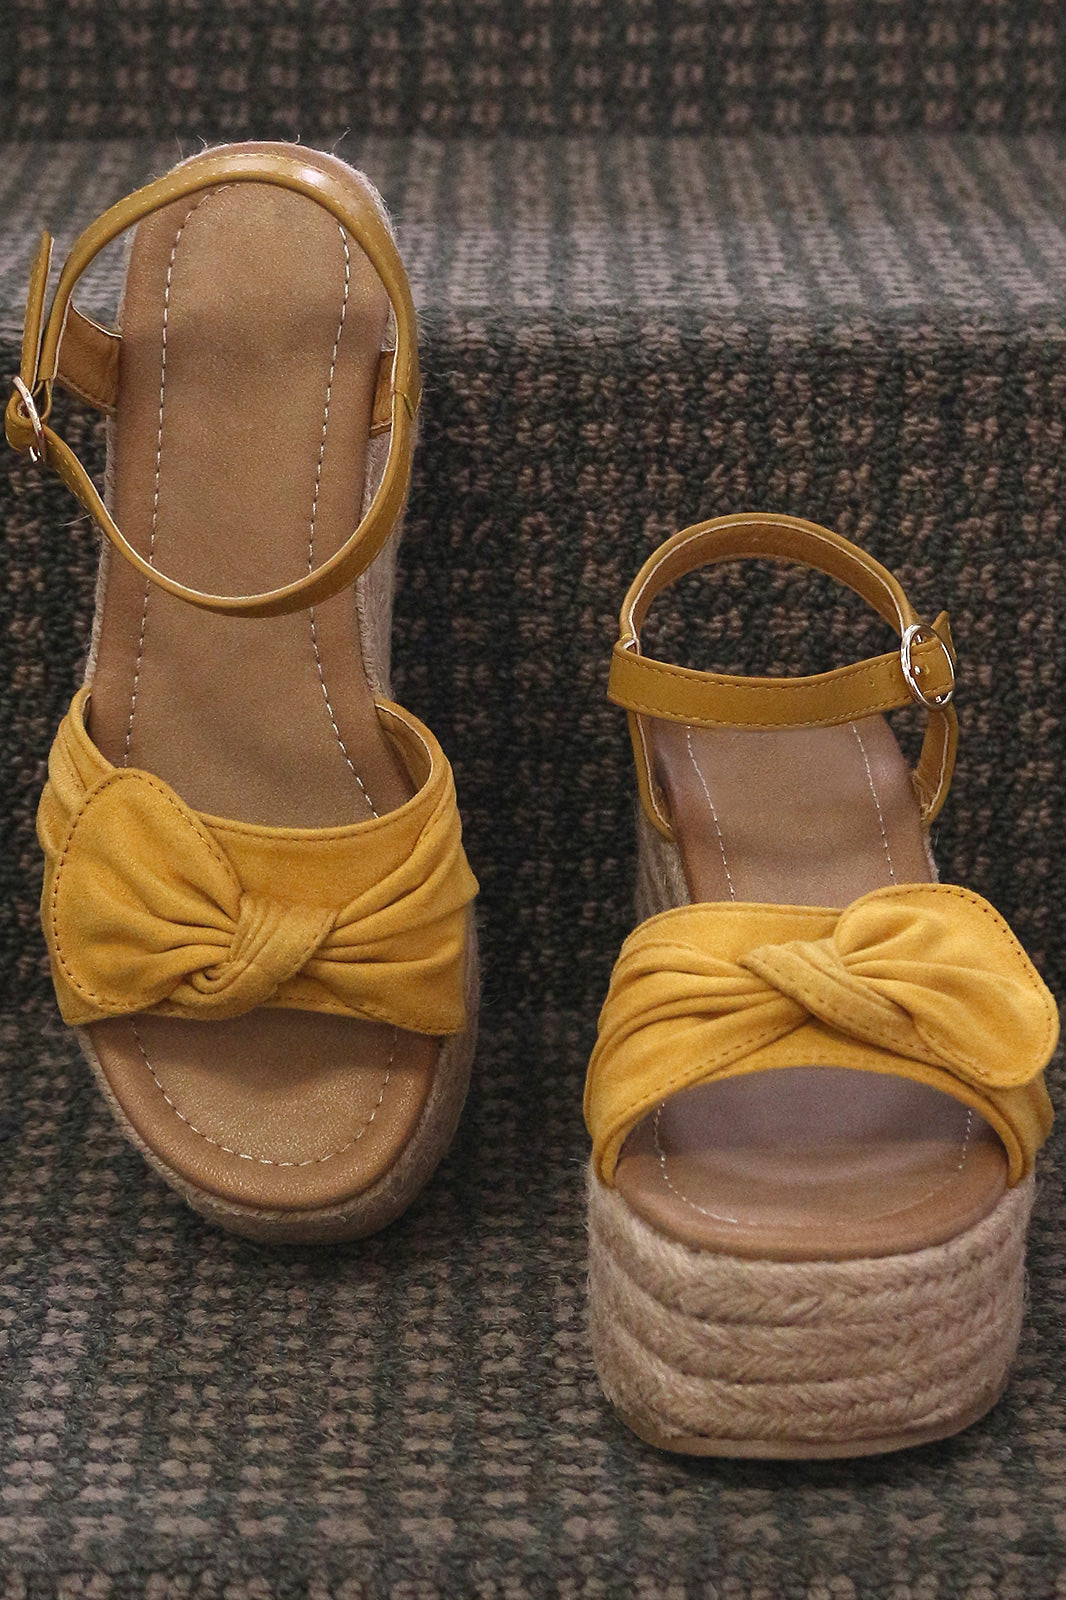 3bca8bfc972 Suede Bow Open Toe Espadrille Platform Wedge - Topaze Fashion